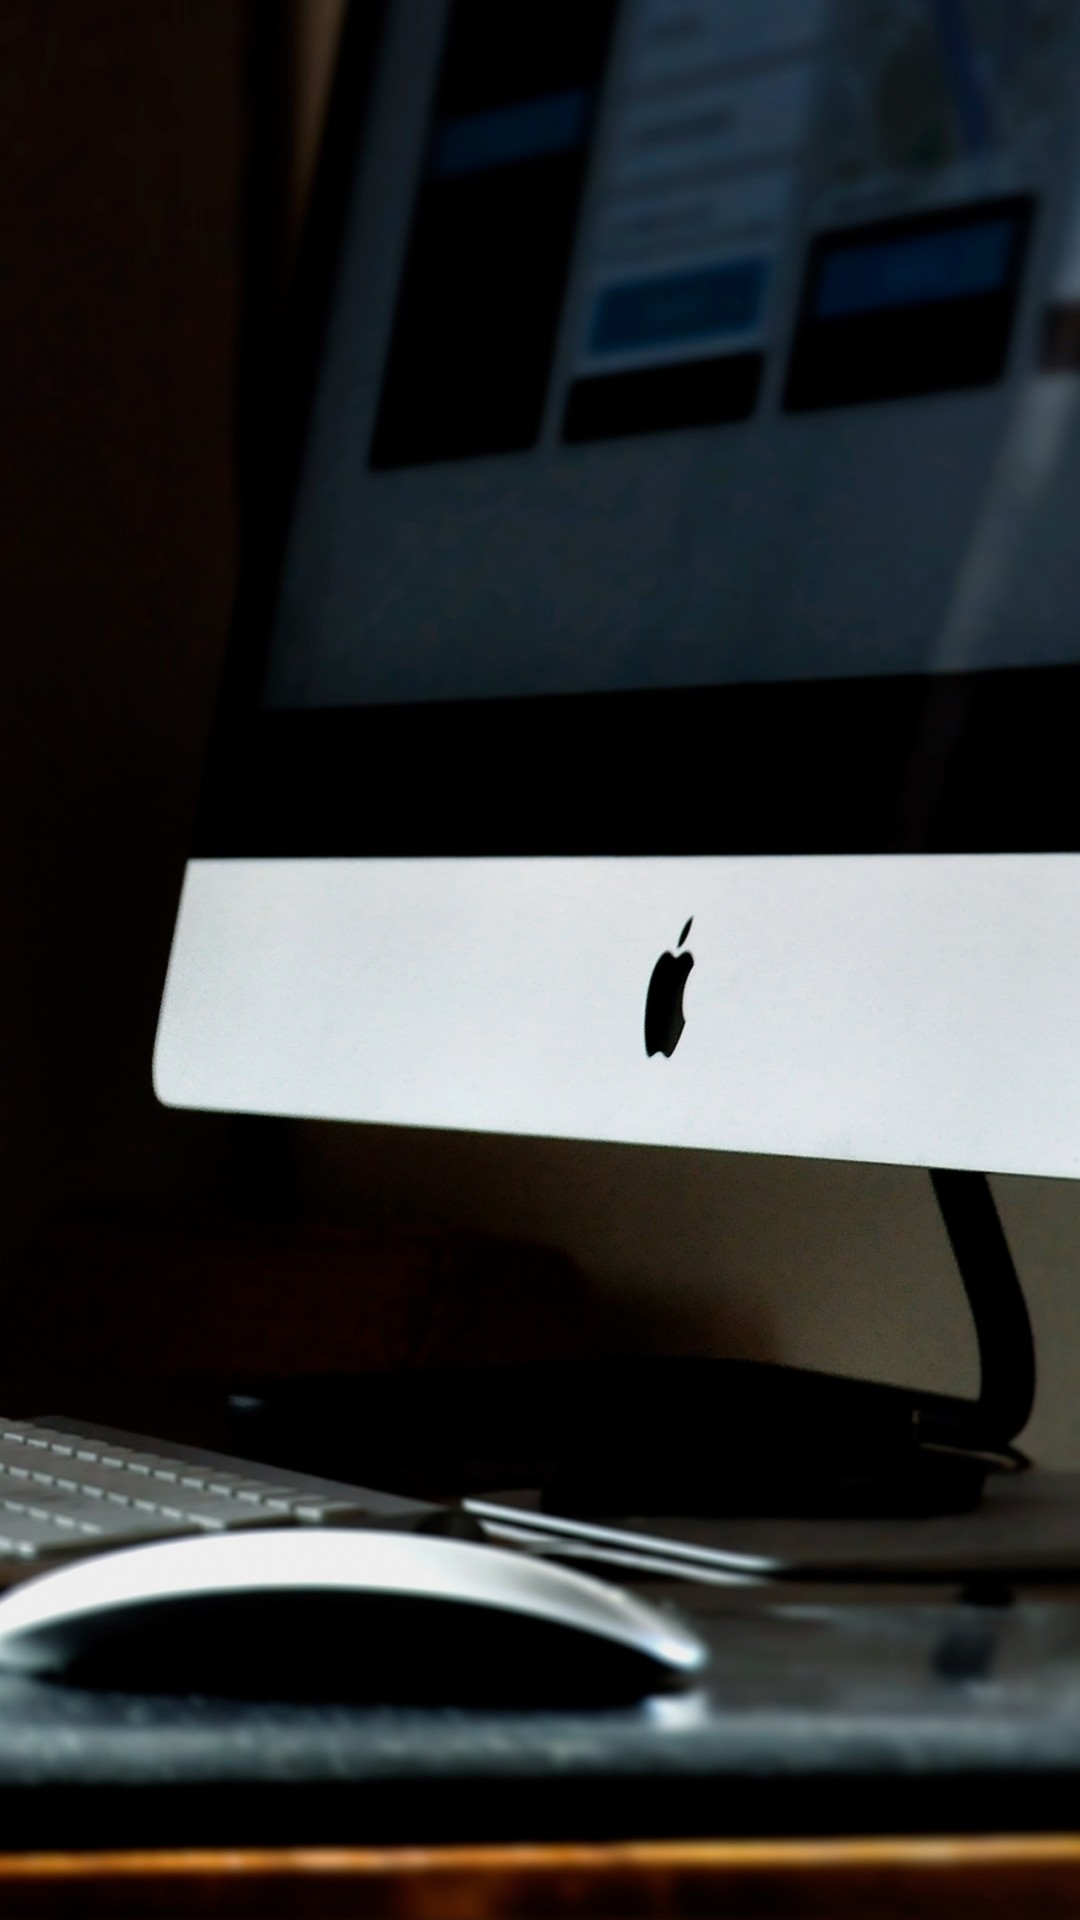 iMac Apple Computer Table Cup Notebook iPhone 8 wallpaper